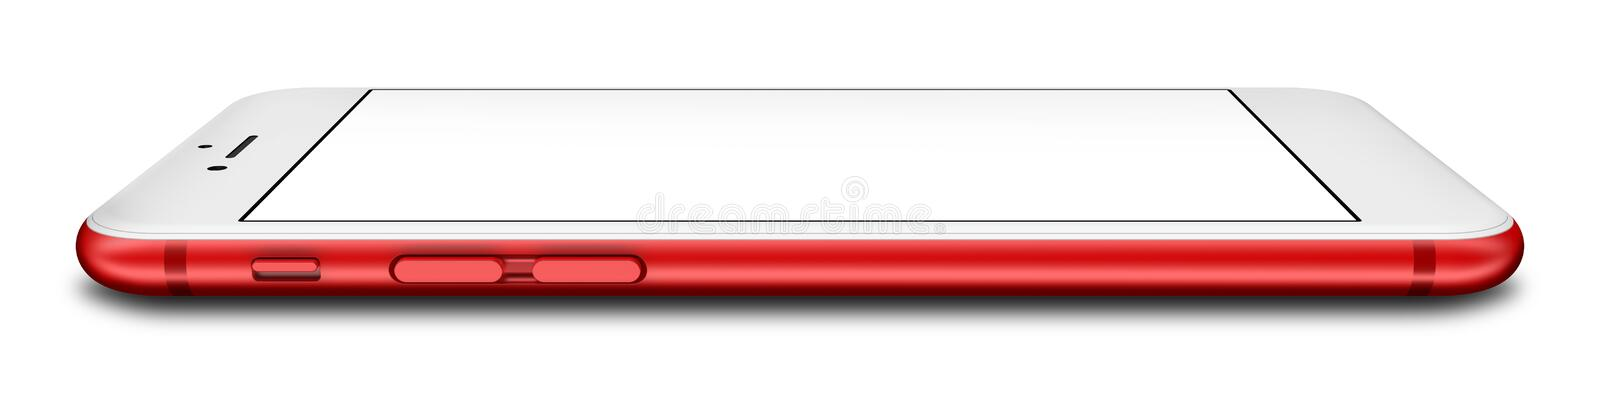 Red smartphone with blank screen, isolated on white background.  stock image